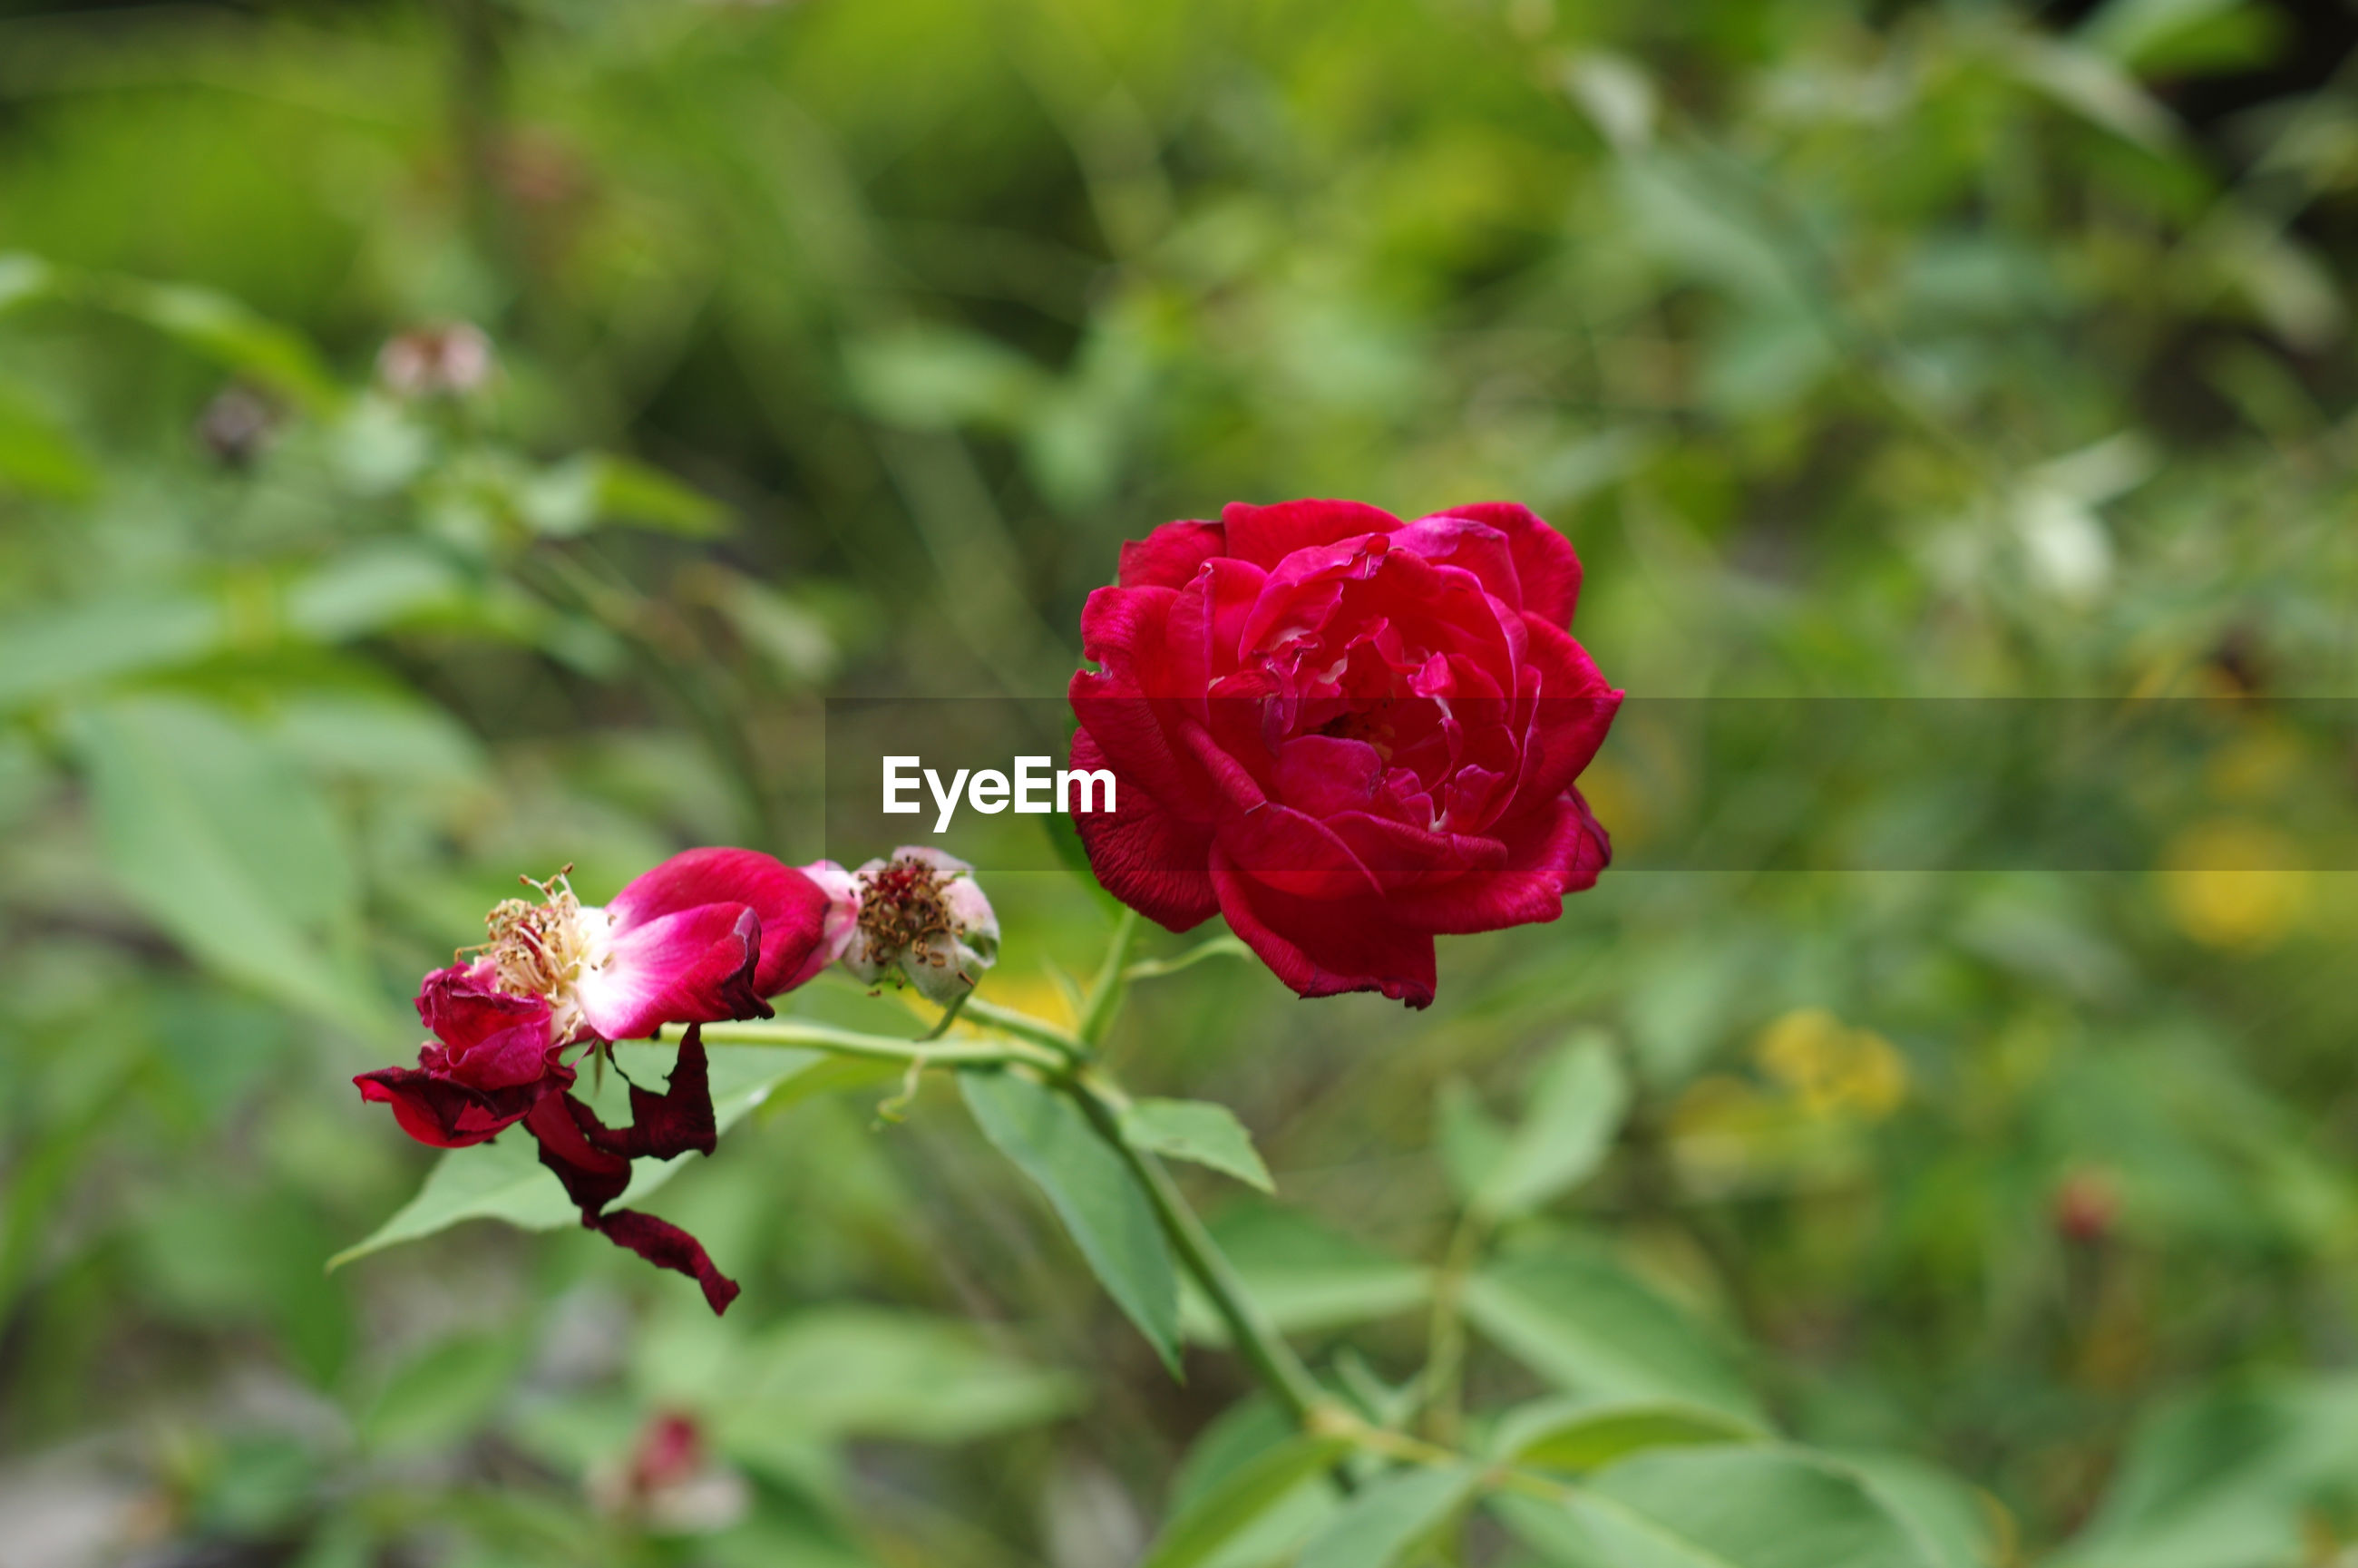 CLOSE-UP OF RED ROSE WITH FLOWER